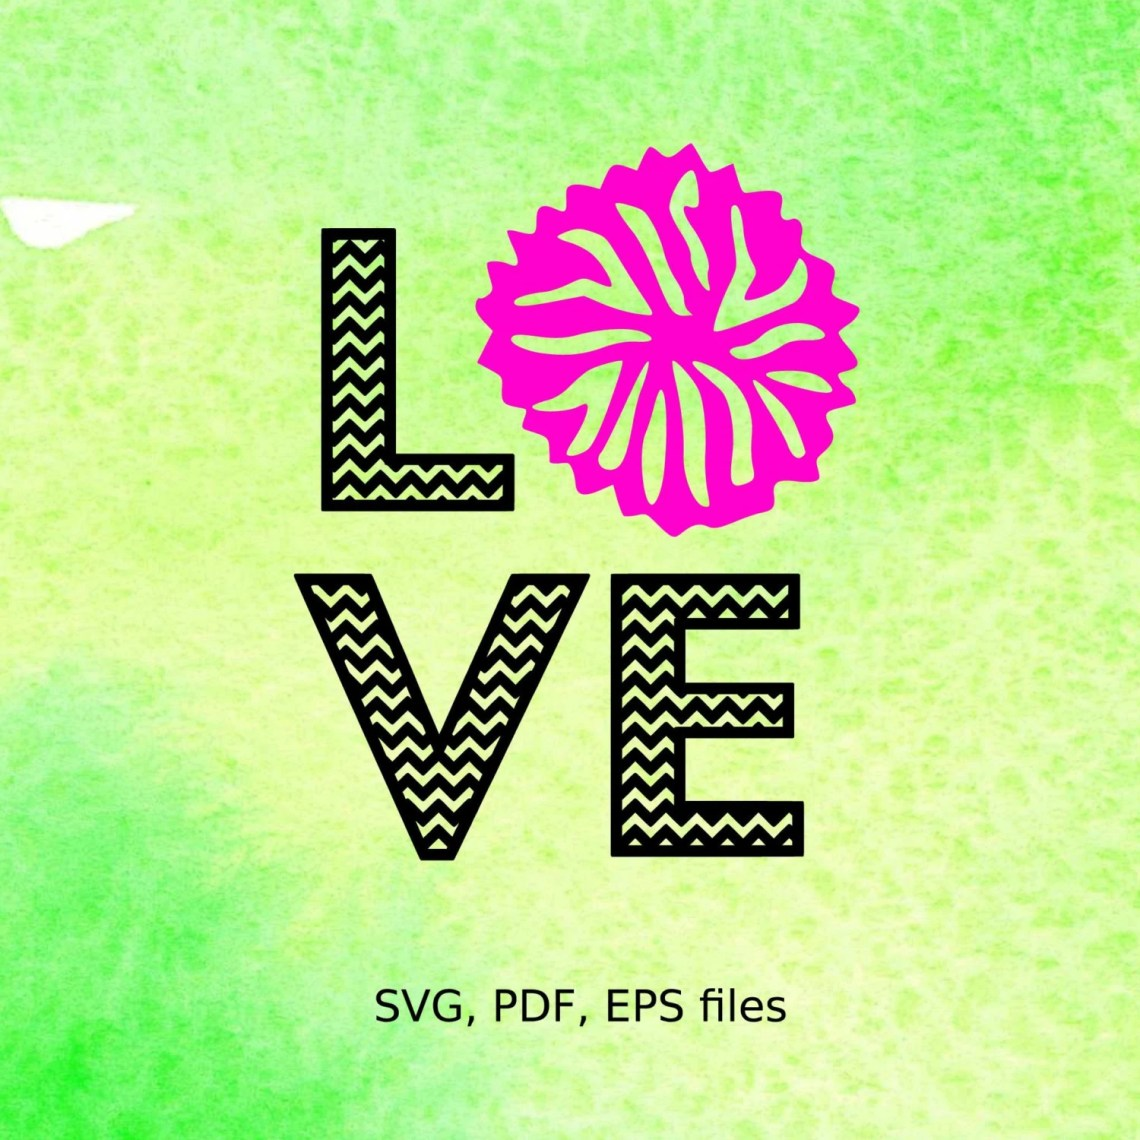 Download Chevron Cheer Love svg pdf eps files for cutting in